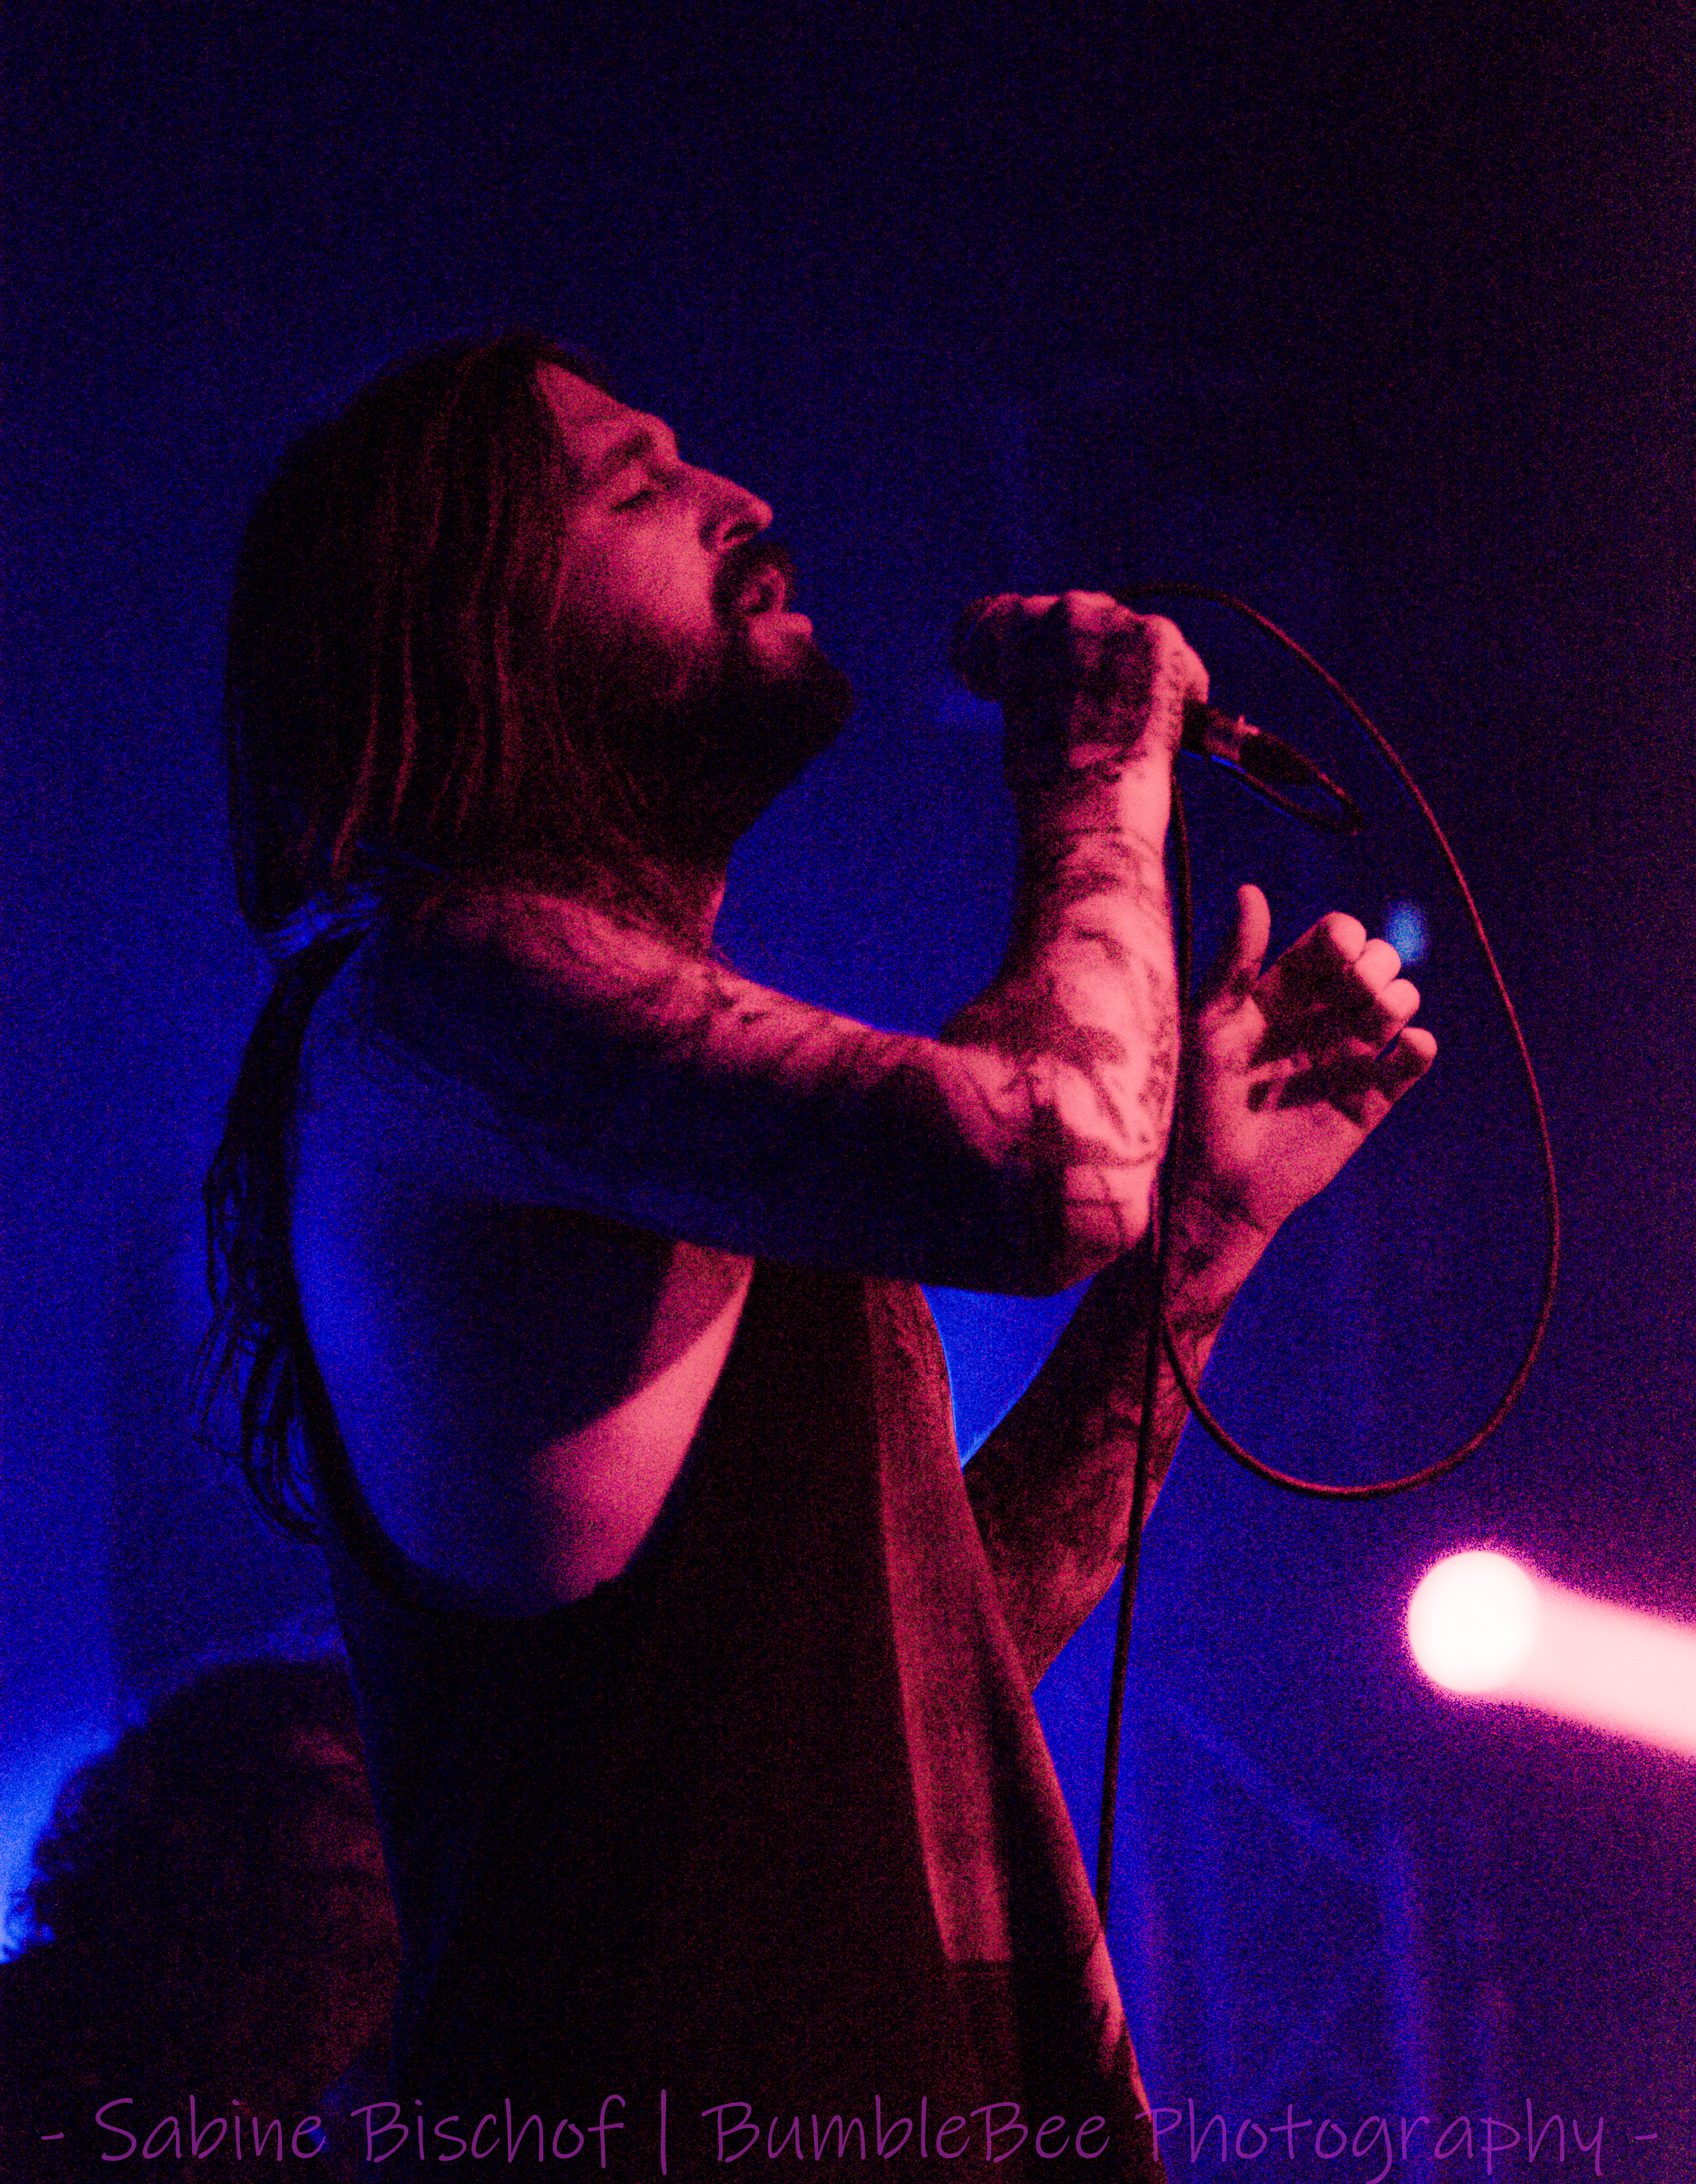 Harakiri for the Sky @ Gagarin Club Tel Aviv 16.11.2019